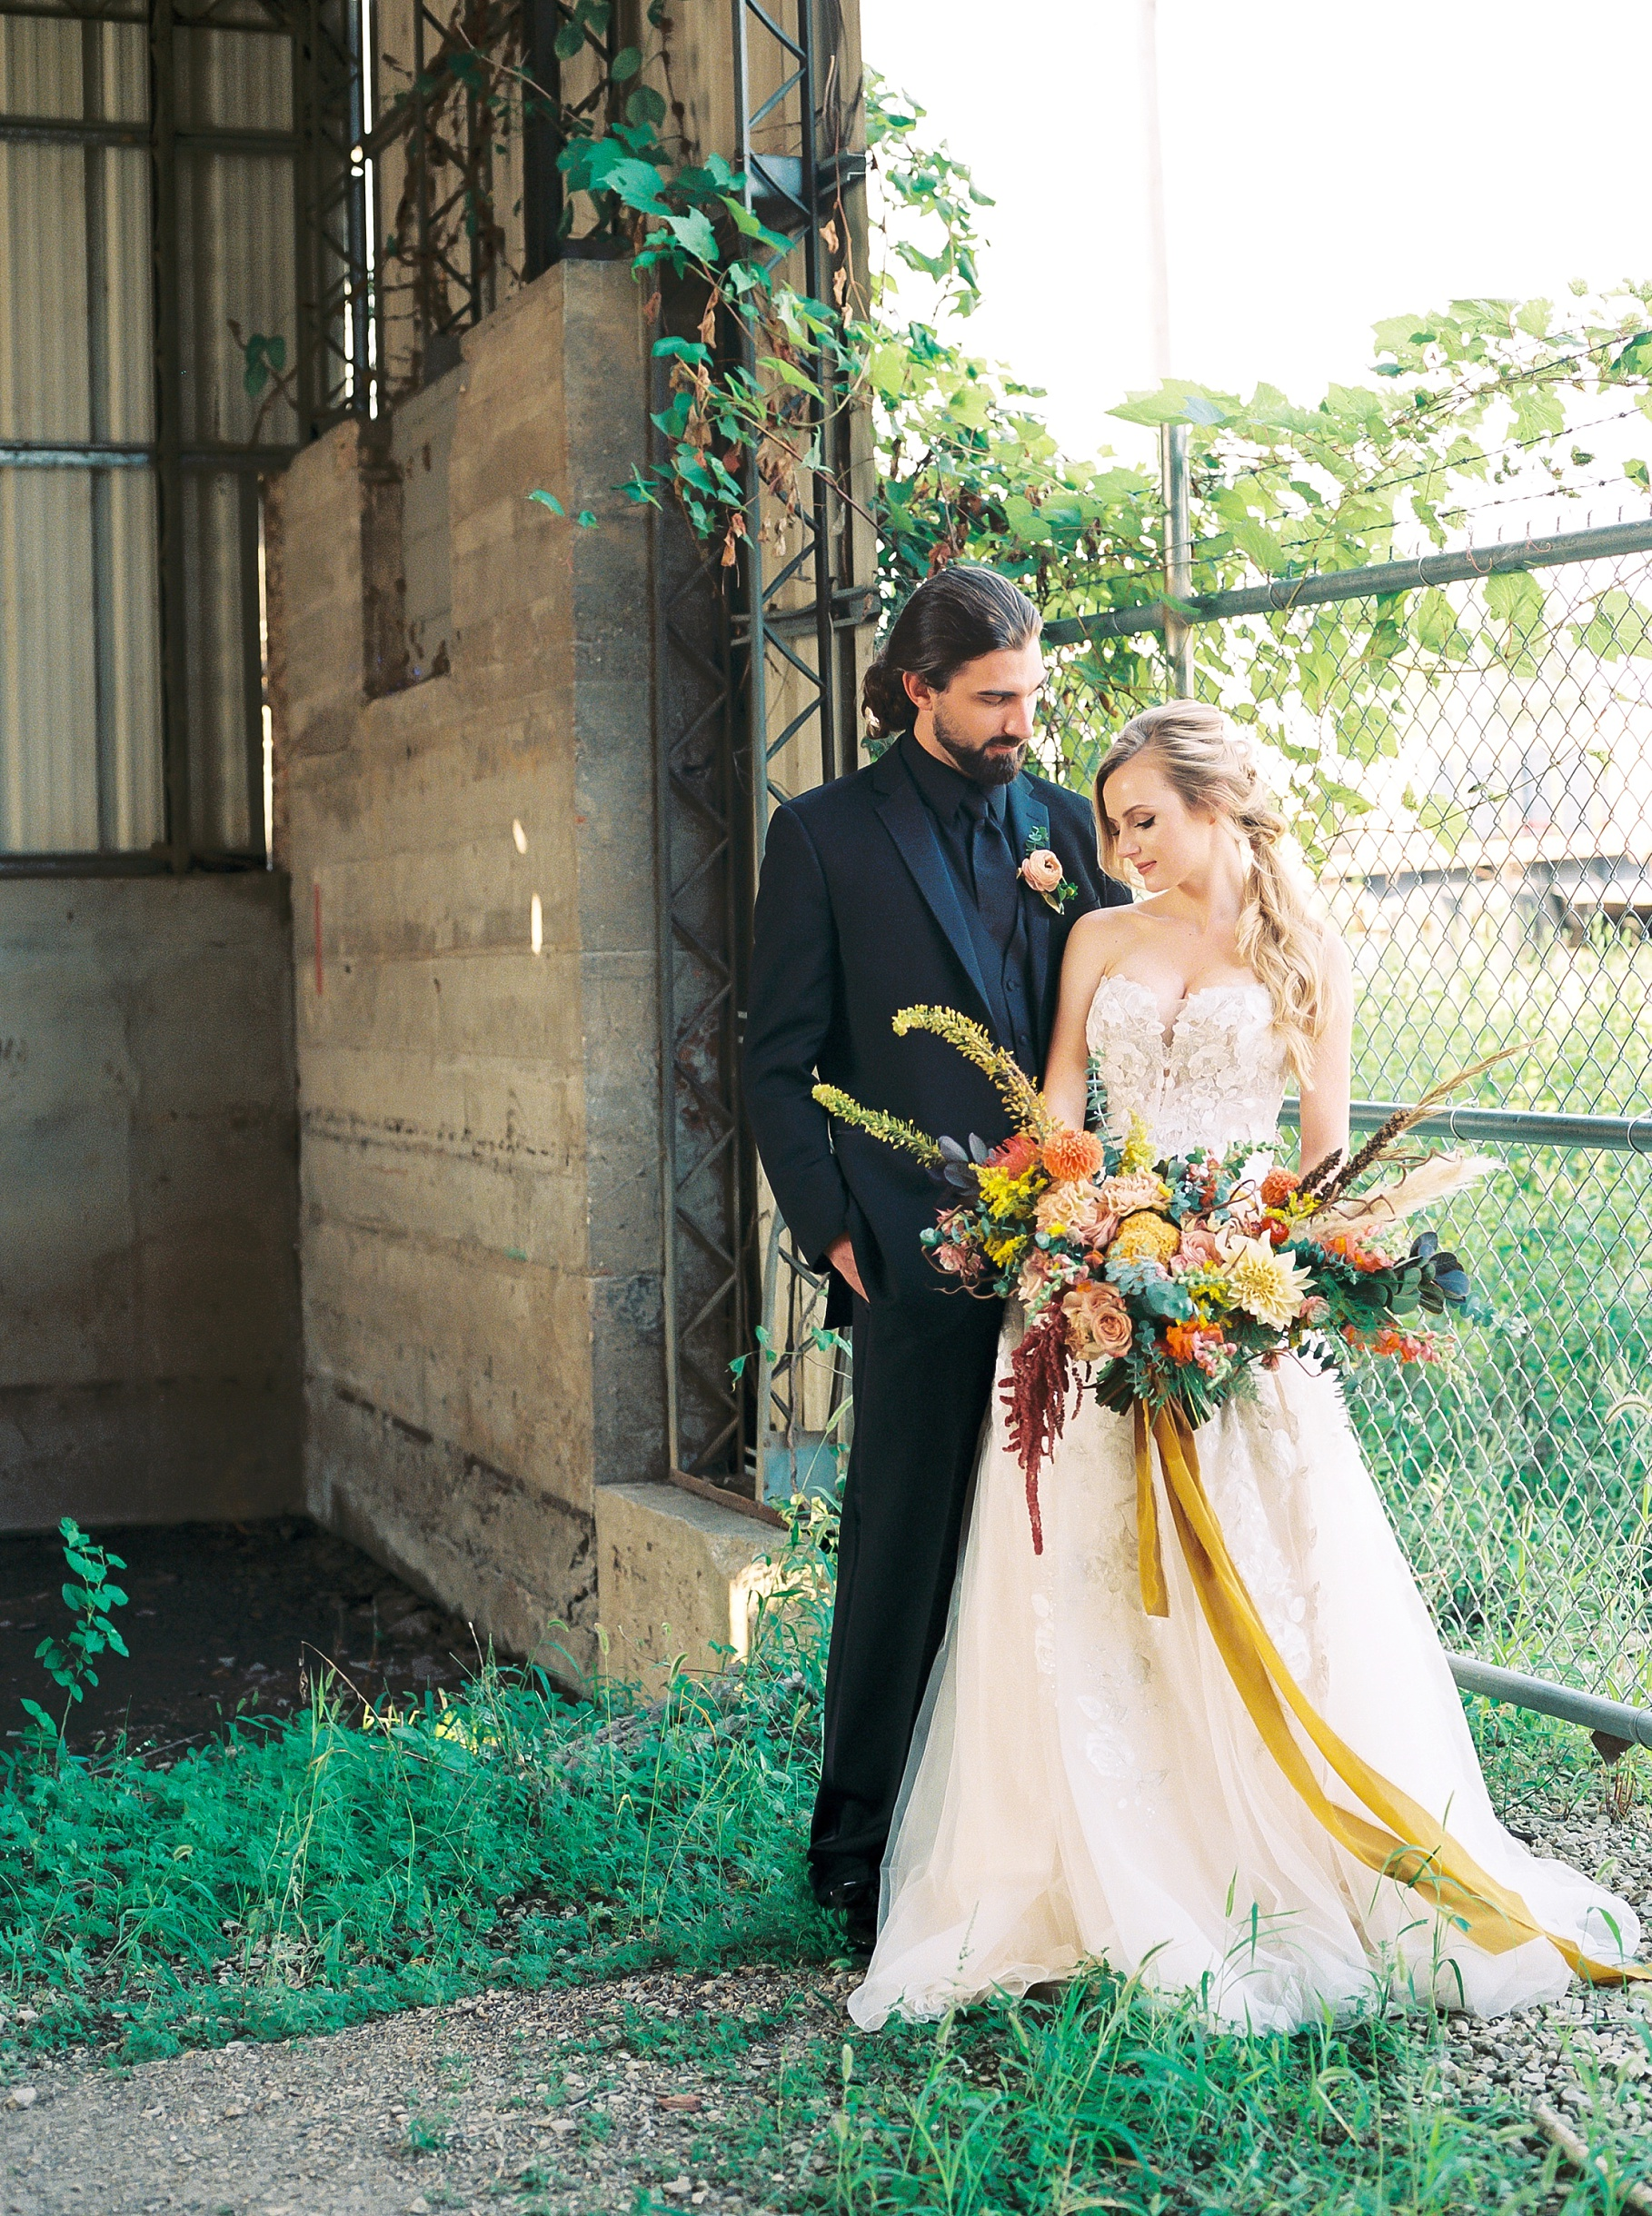 Urban Romance Wedding with Copper Accents at The Millbottom by Kelsi Kliethermes Photography Best Columbia Missouri Wedding Photographer_0068.jpg